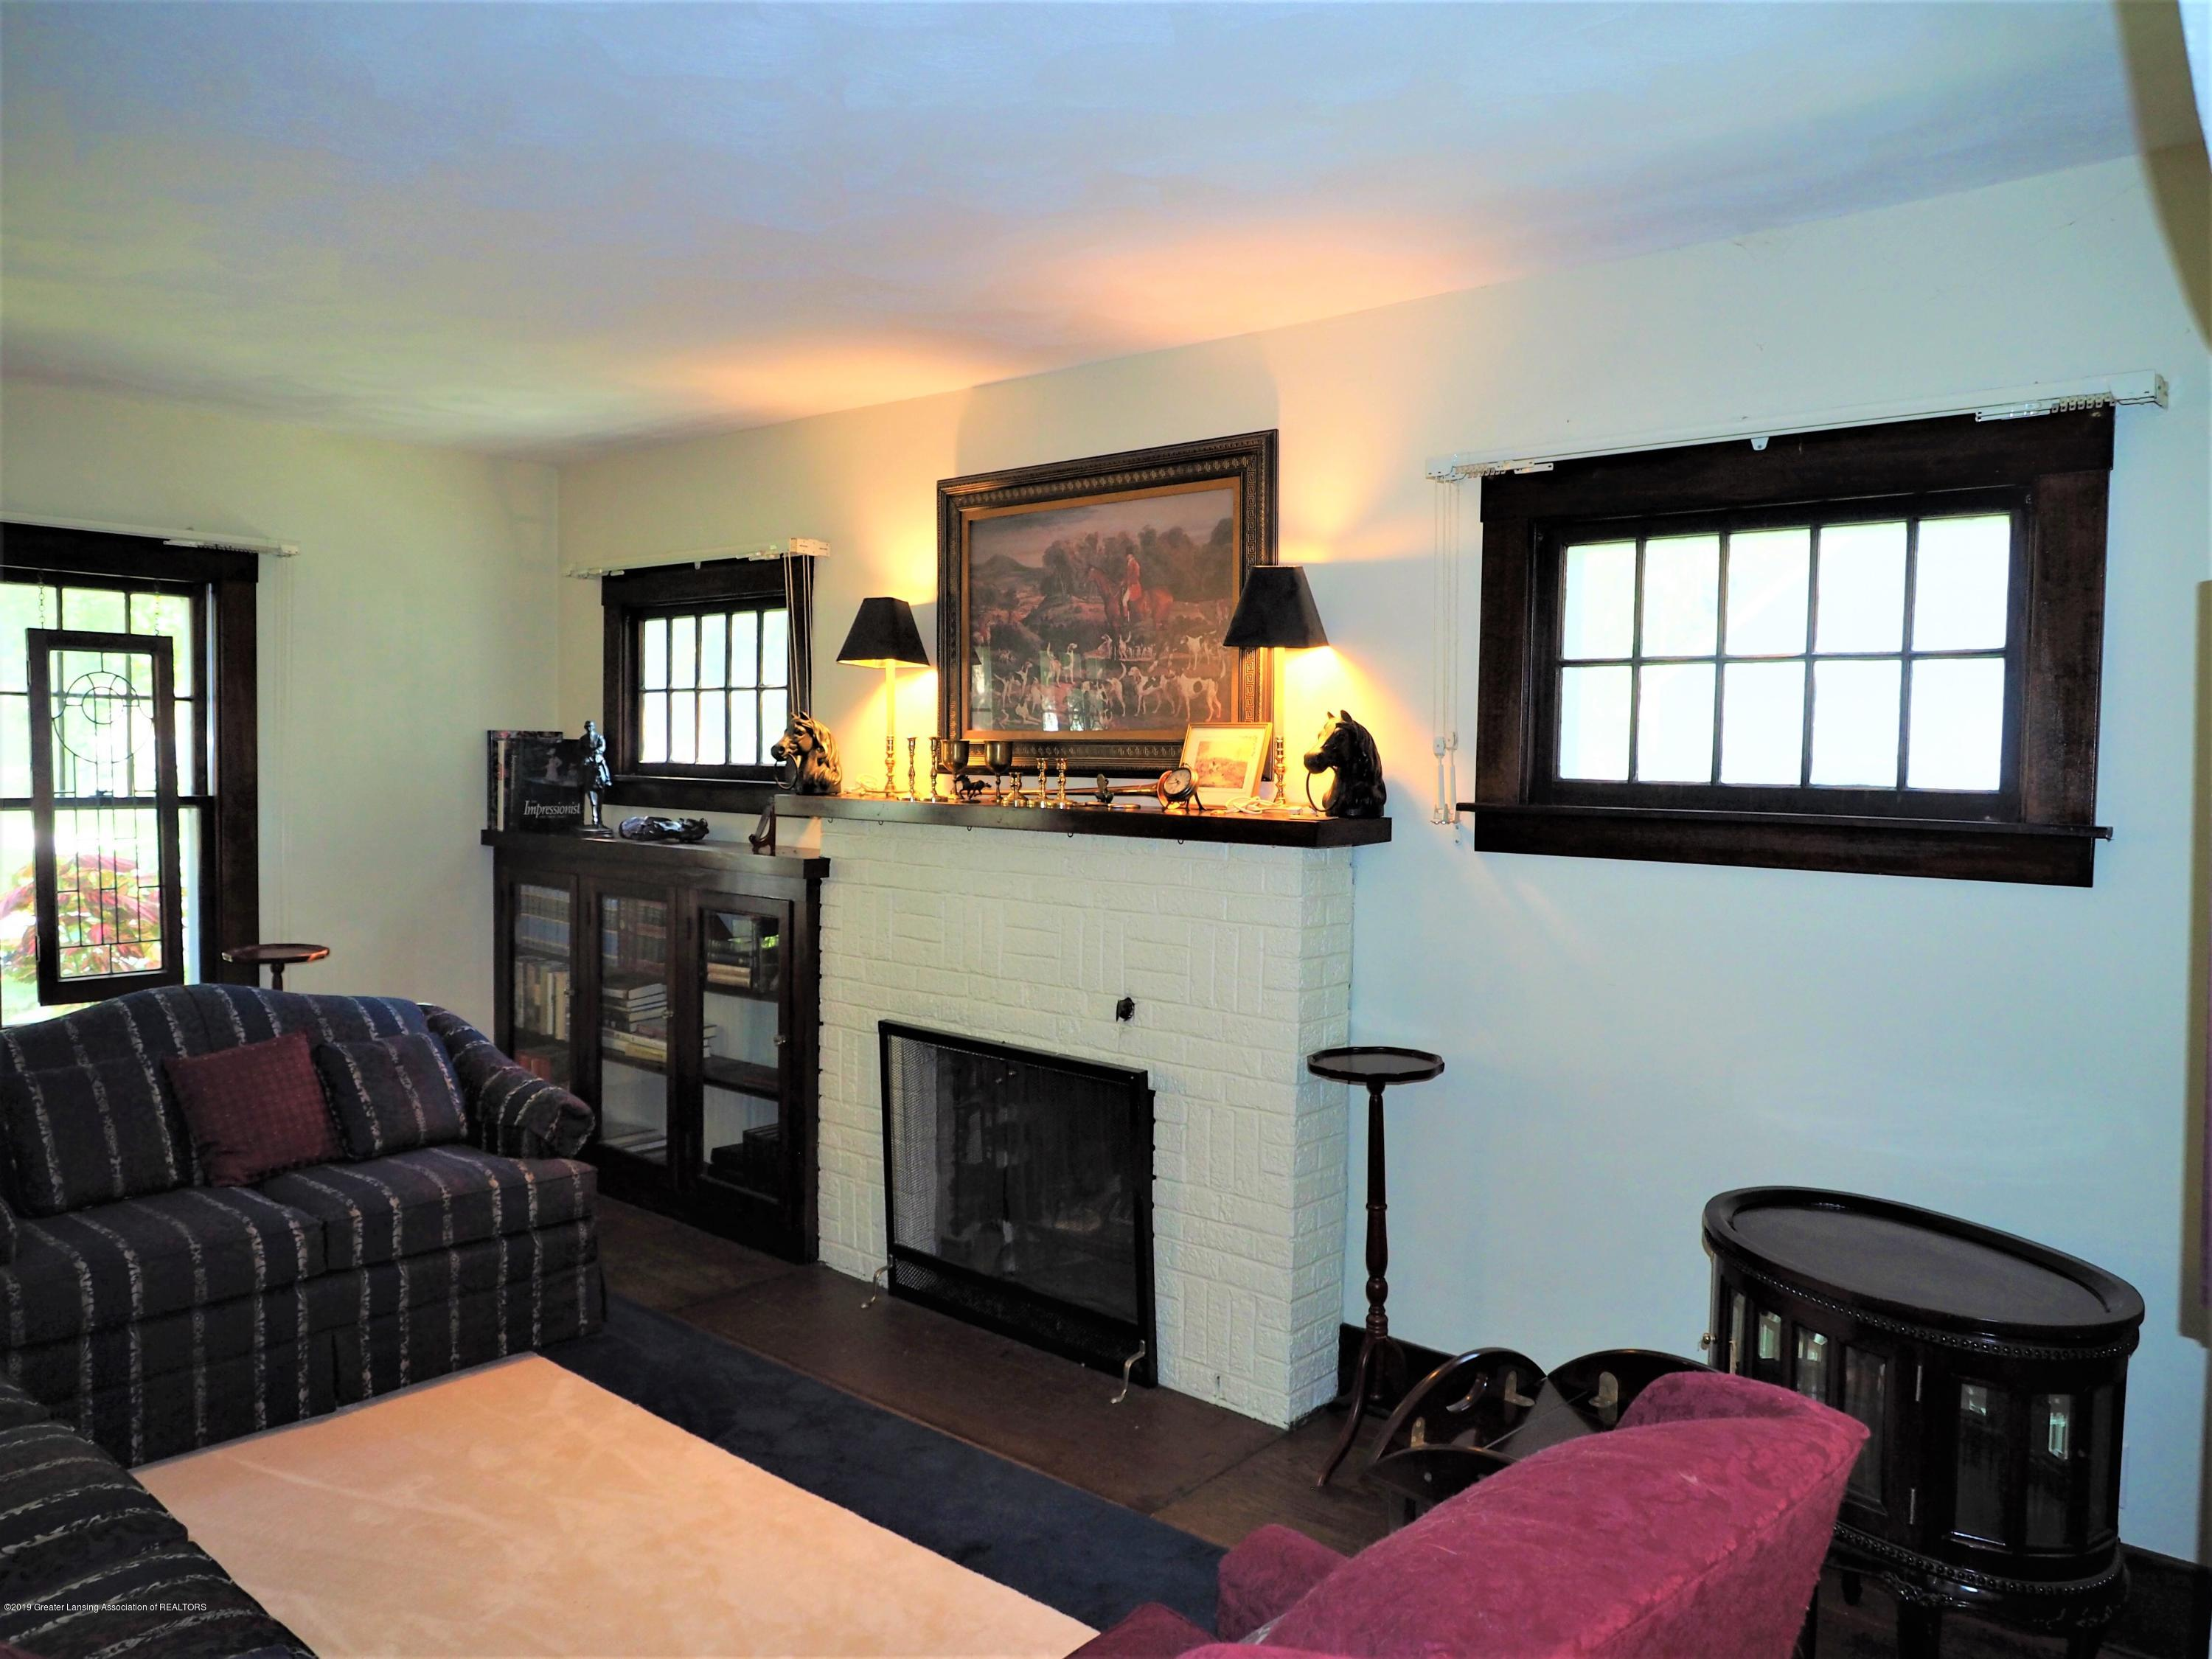 343 Cowley Ave - P1011417 - 8